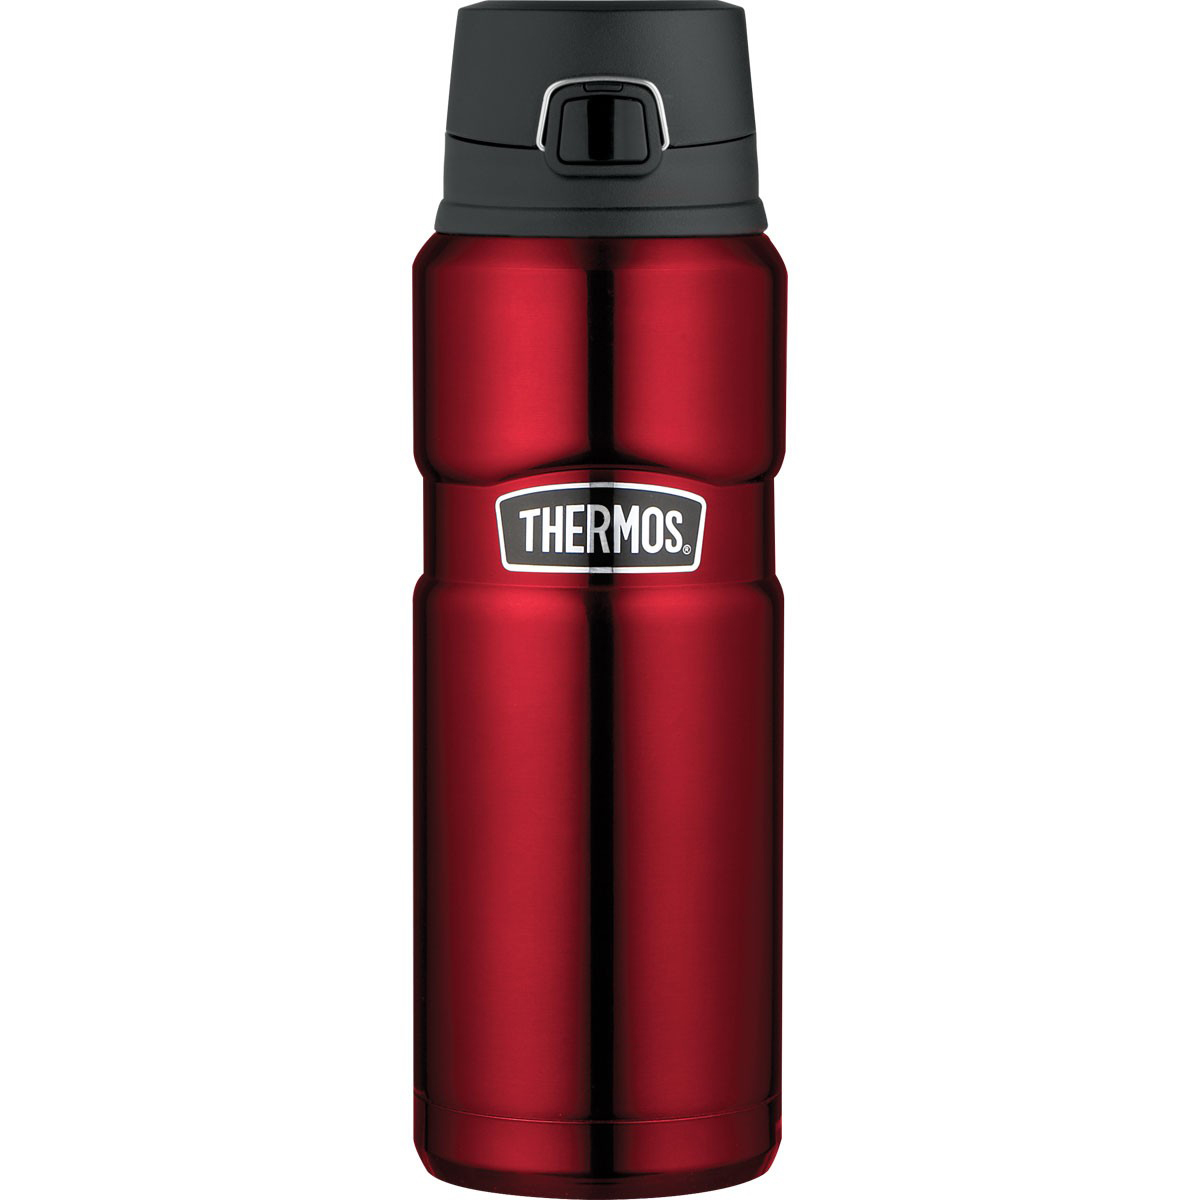 Thermos-24-oz-Stainless-King-Vacuum-Insulated-Stainless-Steel-Water-Bottle thumbnail 5